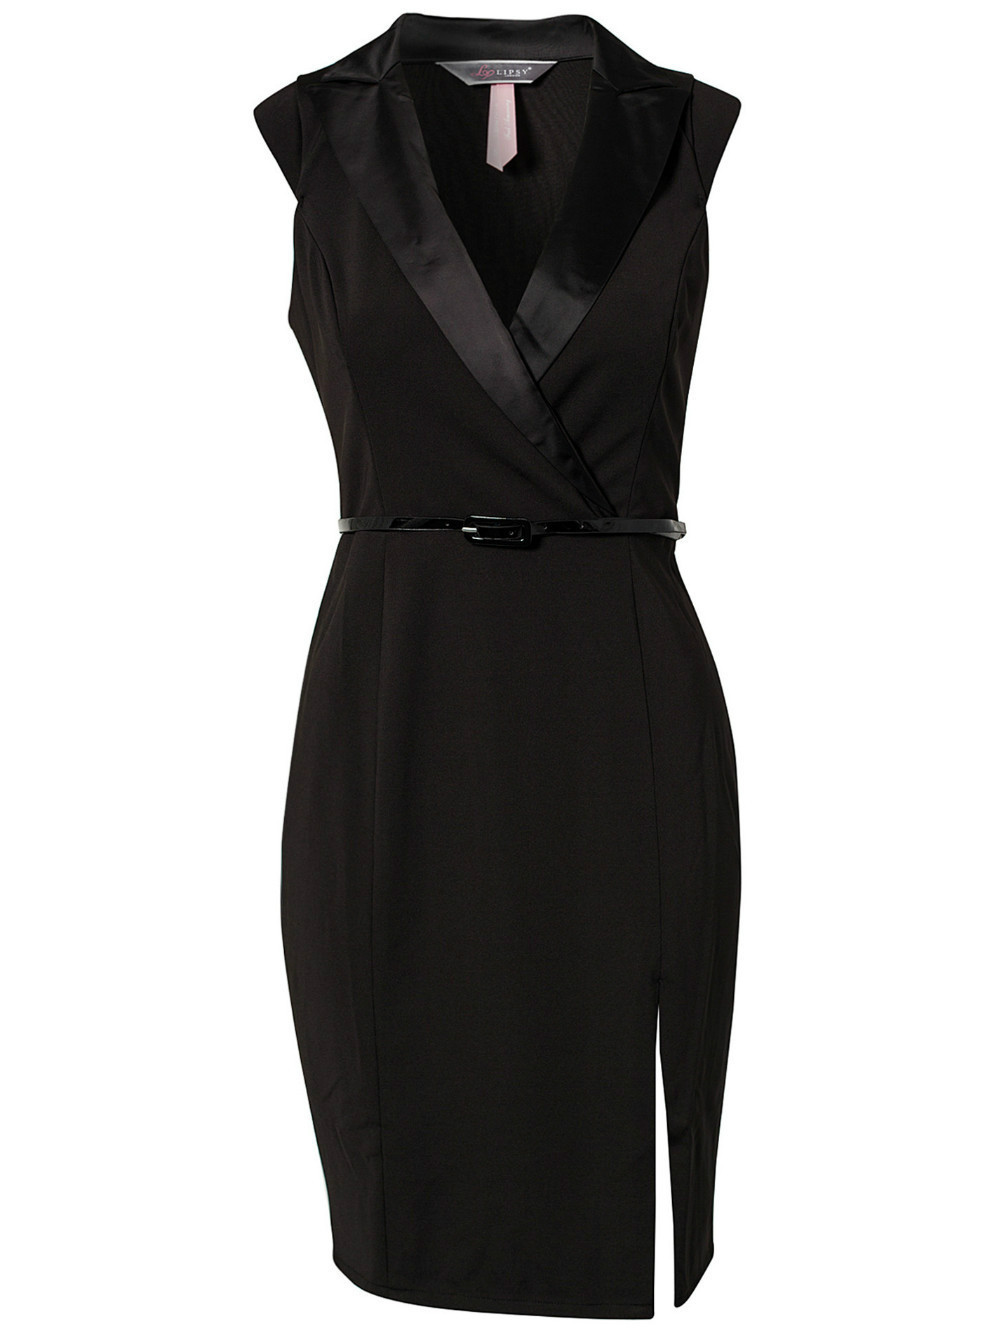 Black dress design - European And American Design 2014 New Fashion Women Black Ol Work Office Lady Celebrity Dress Club Party Dress With Belt 9d030 In Dresses From Women S